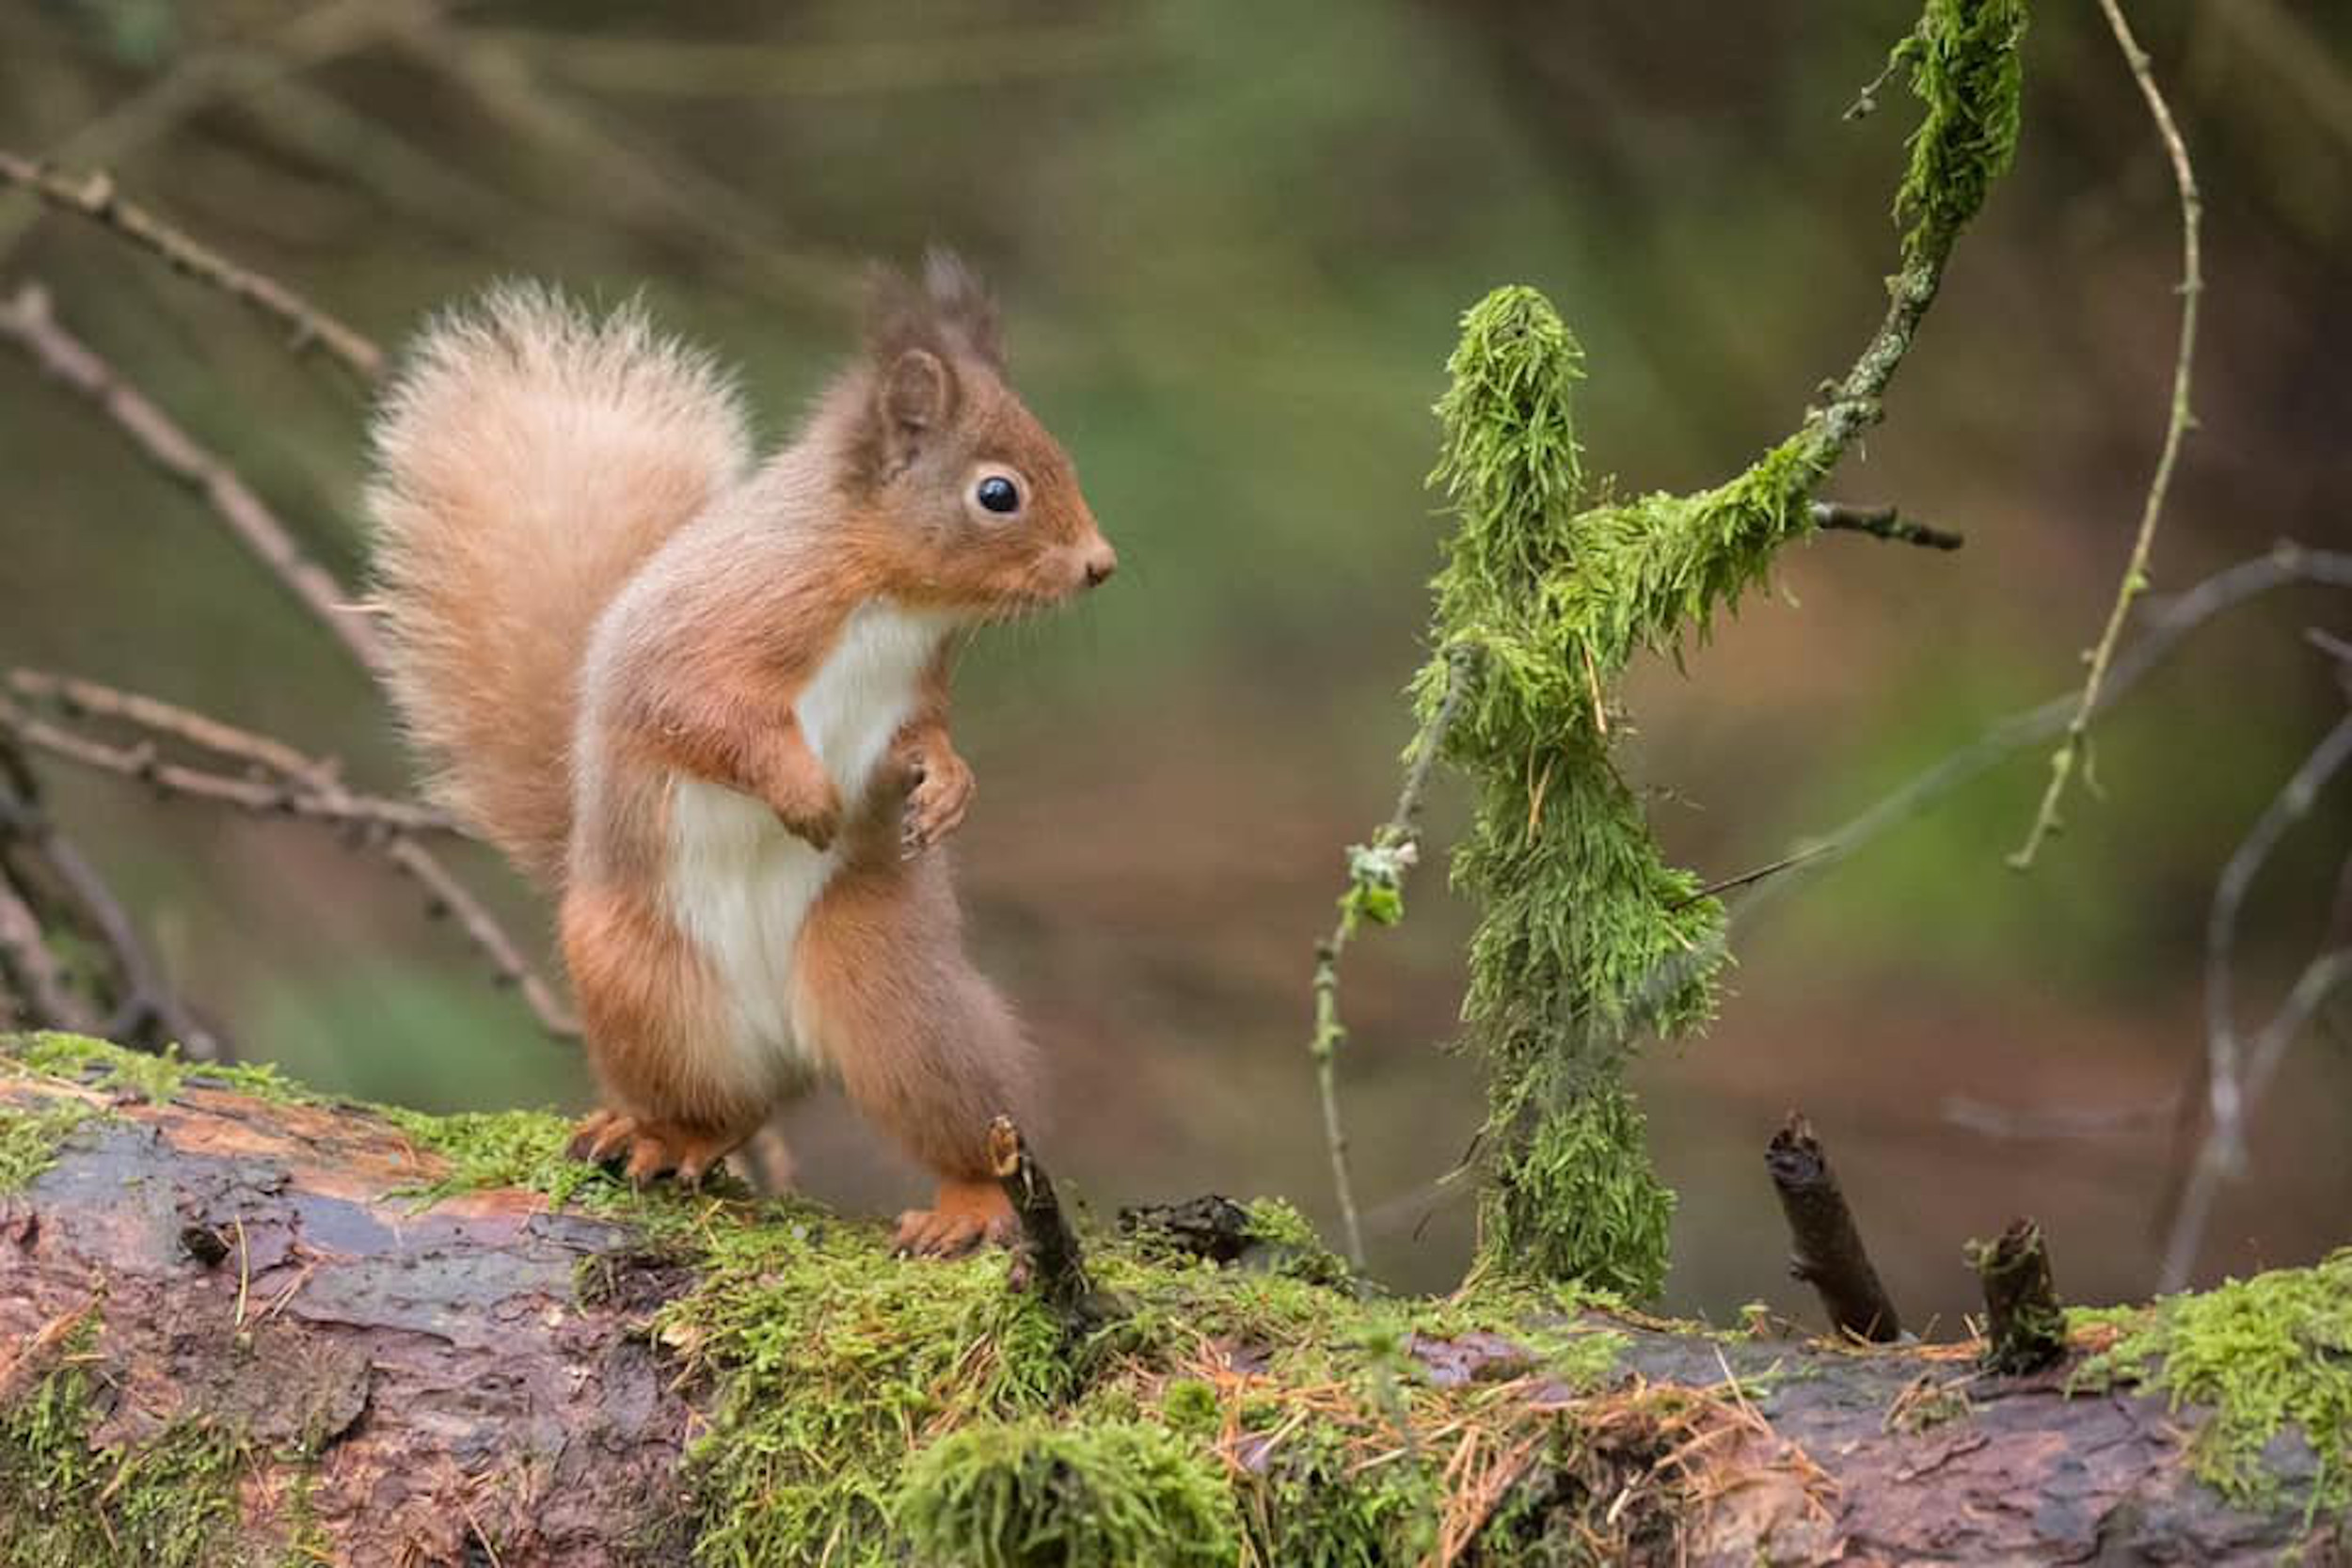 Squirrel dancing with twig - Nature